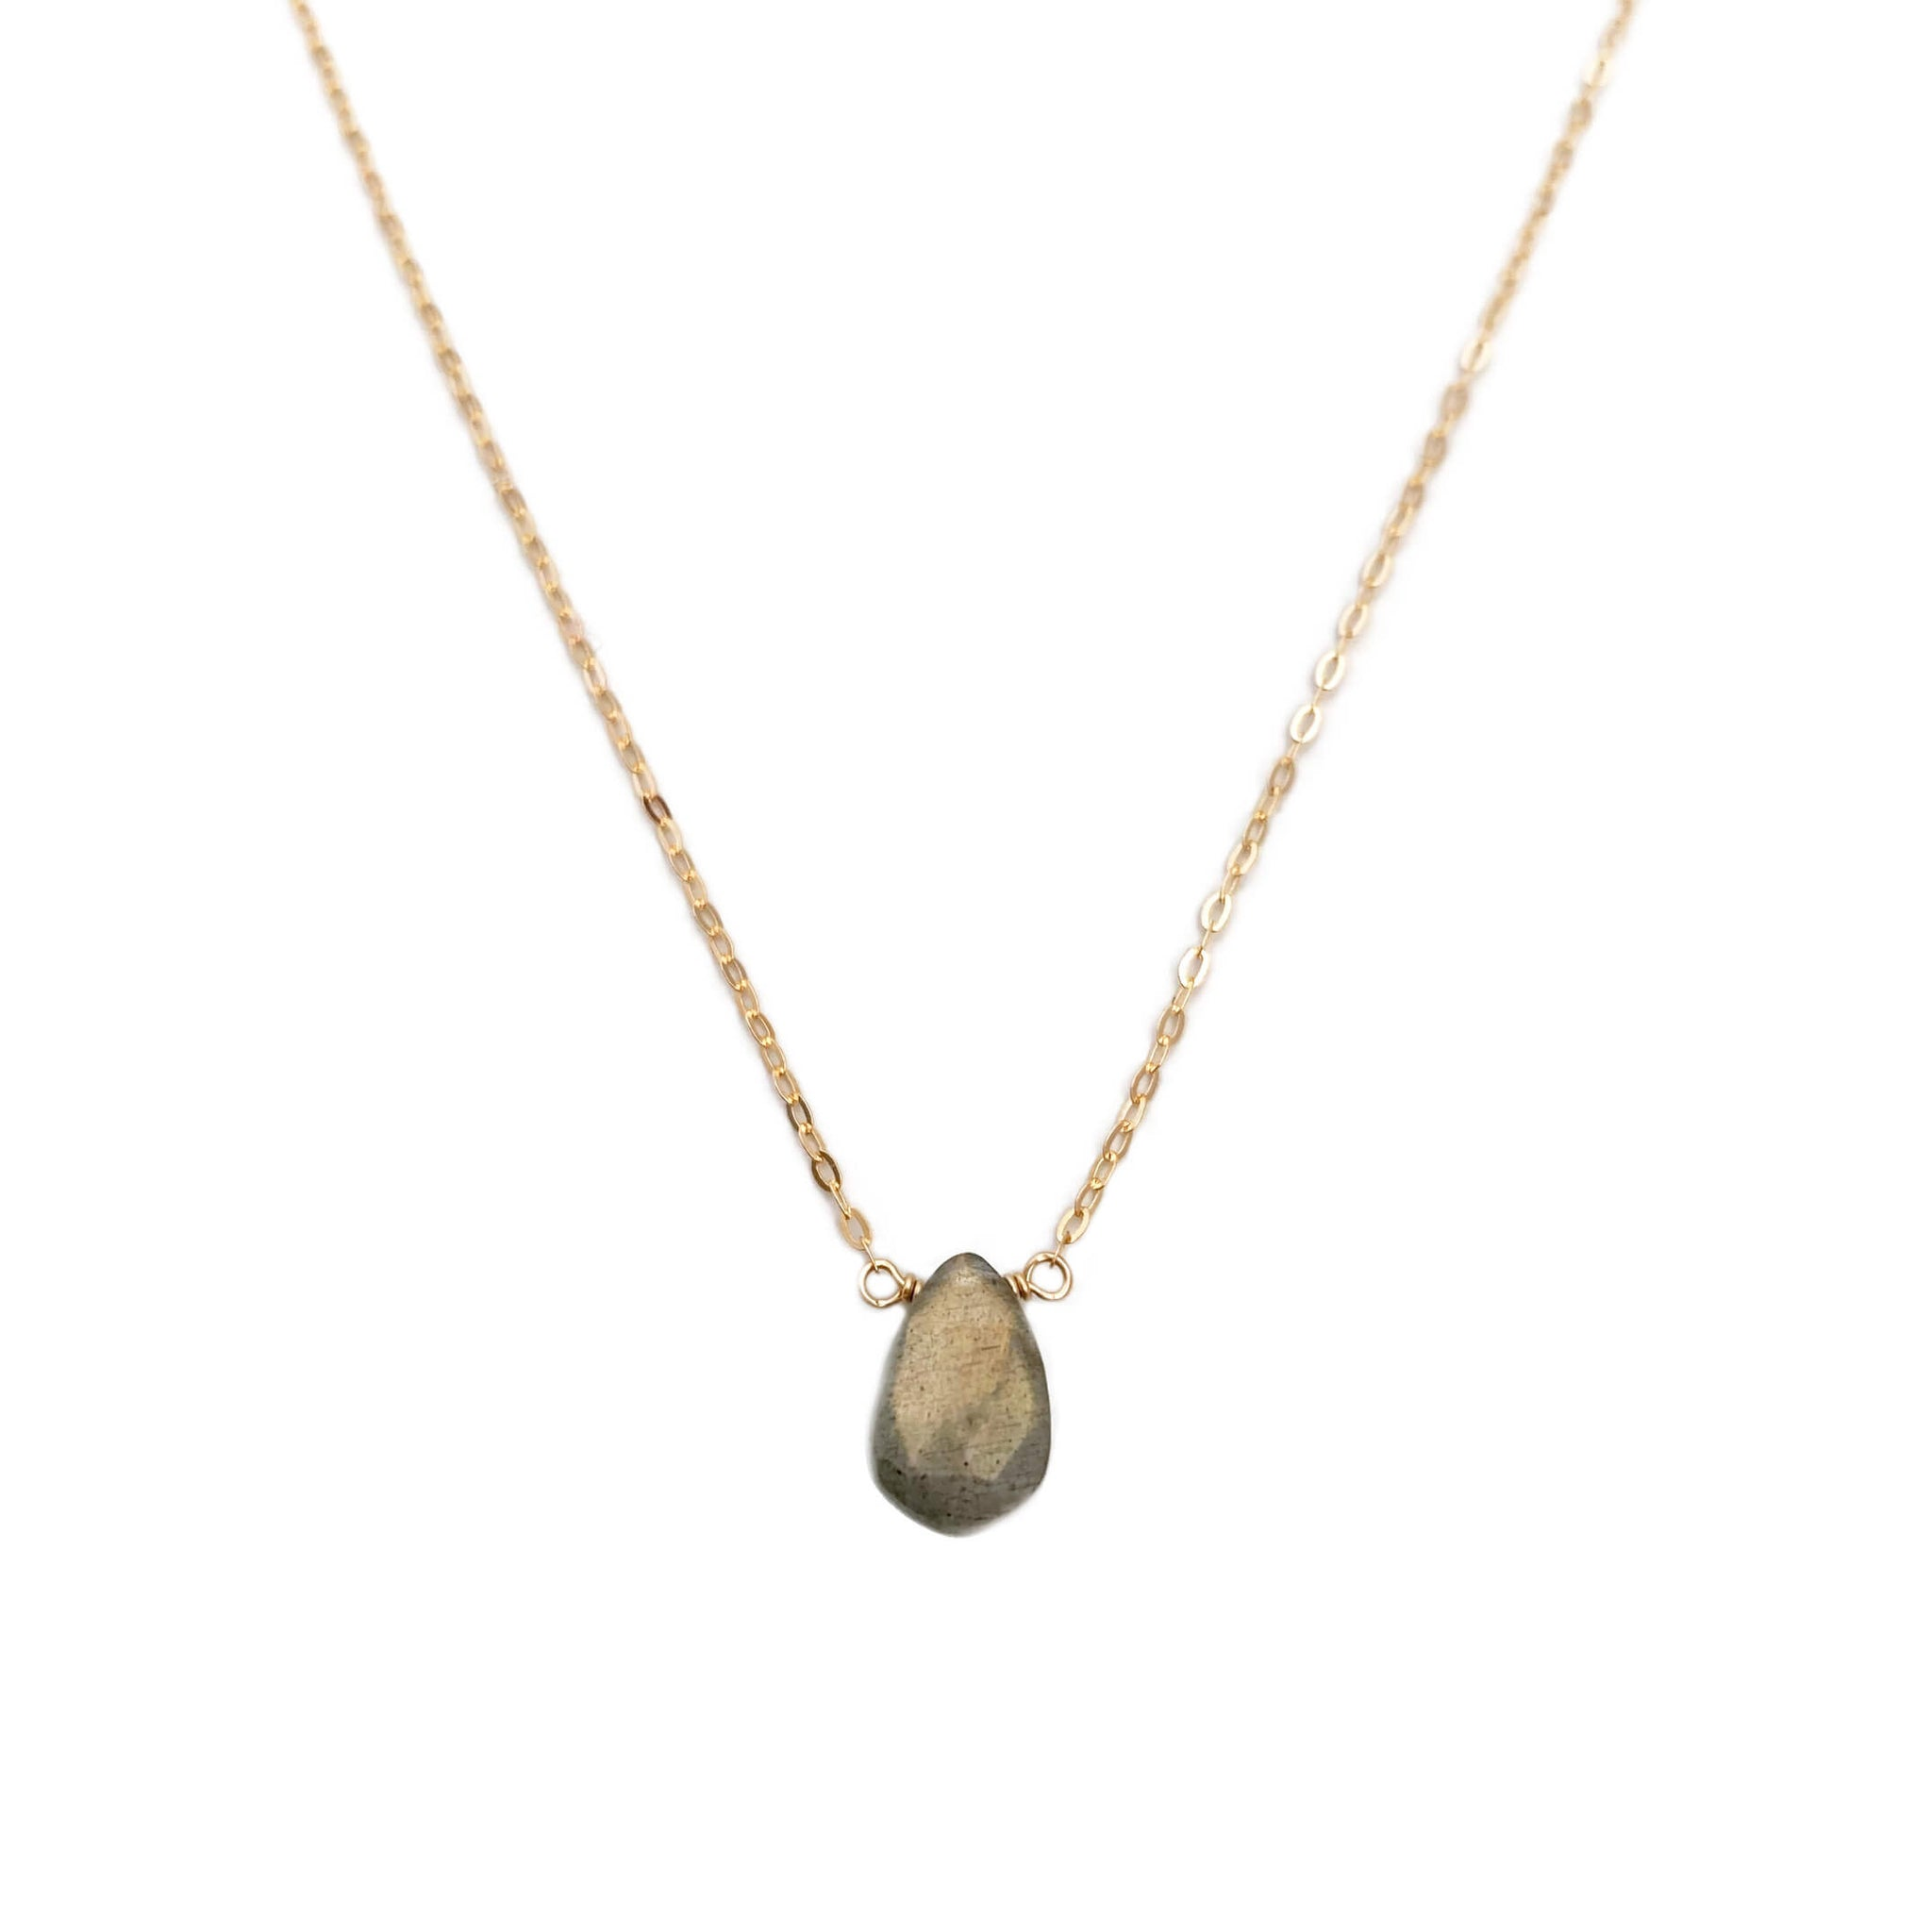 This labradorite healing necklace is made with a labradorite gemstone, a stone known for its energy and healing powers.